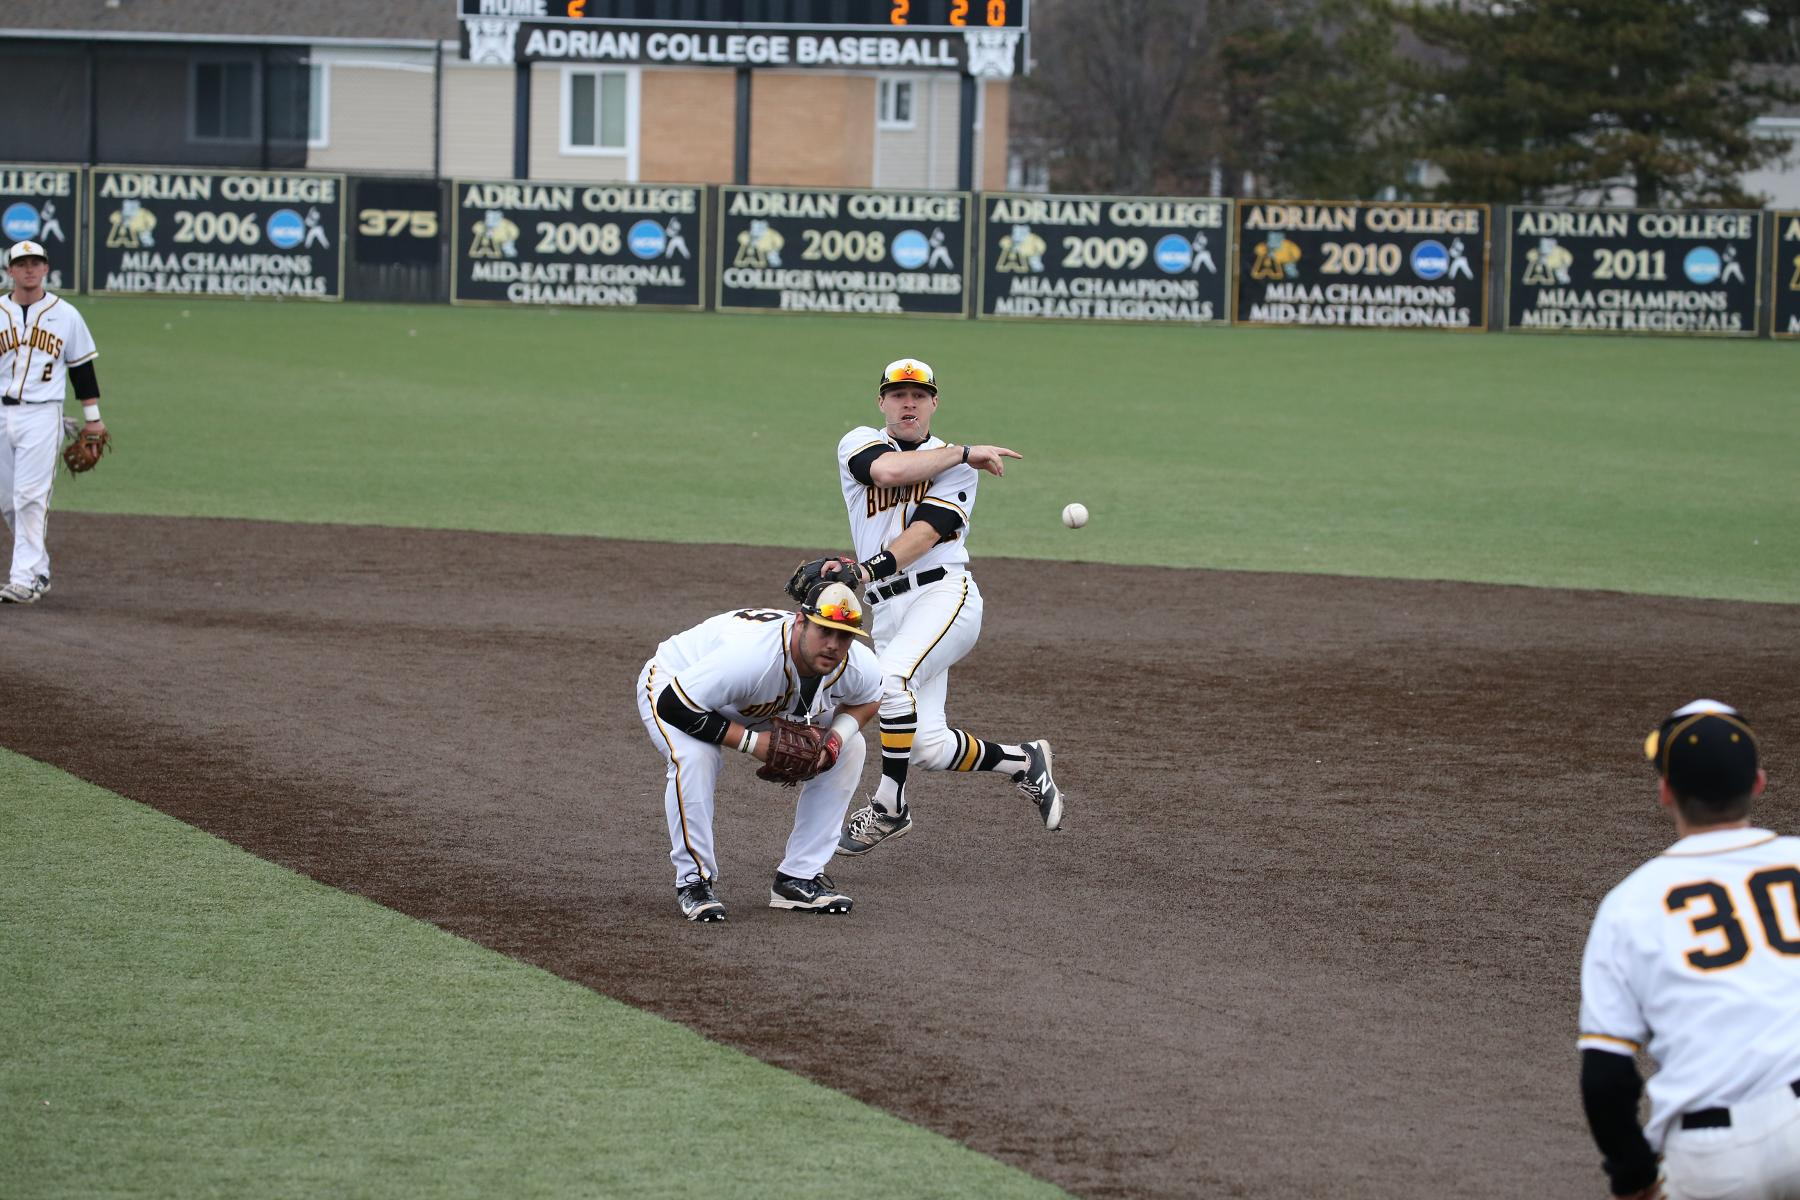 @AdrianBaseball Topples Nationally No. 3-Ranked Birmingham-Southern in Come-From-Behind 3-2 Win